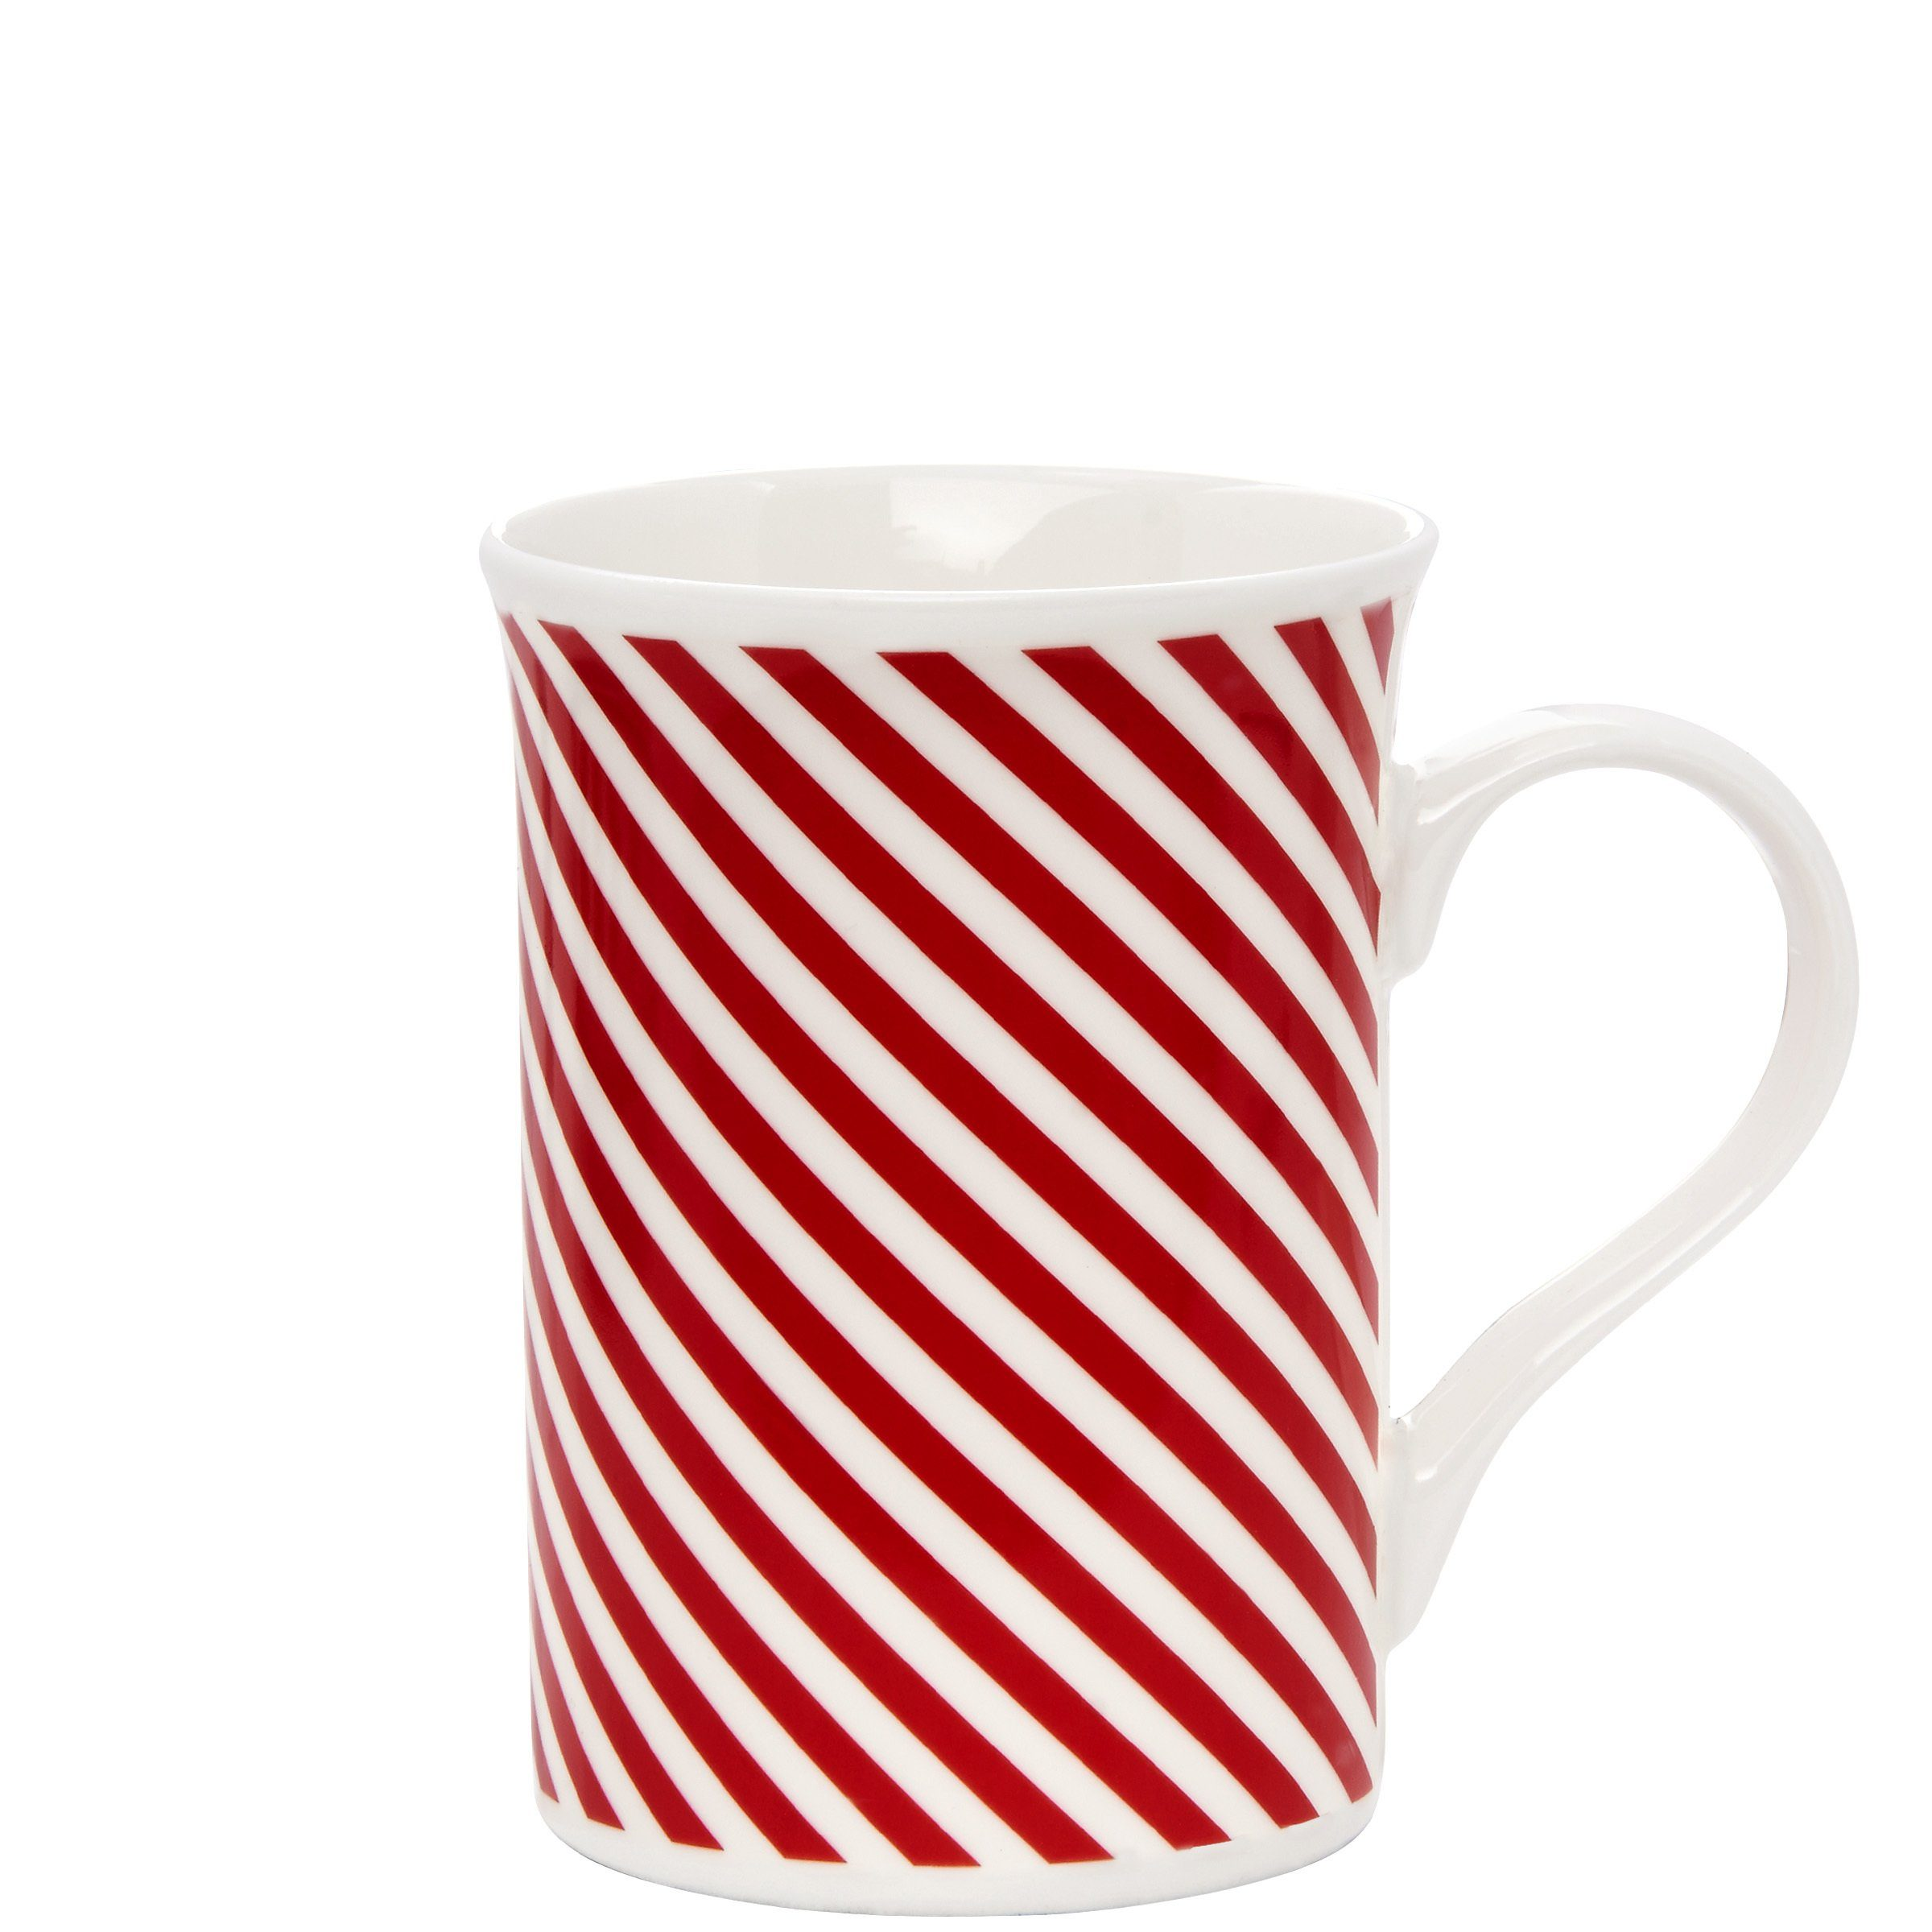 BUTLERS HOLLY JOLLY »Punch Tasse«